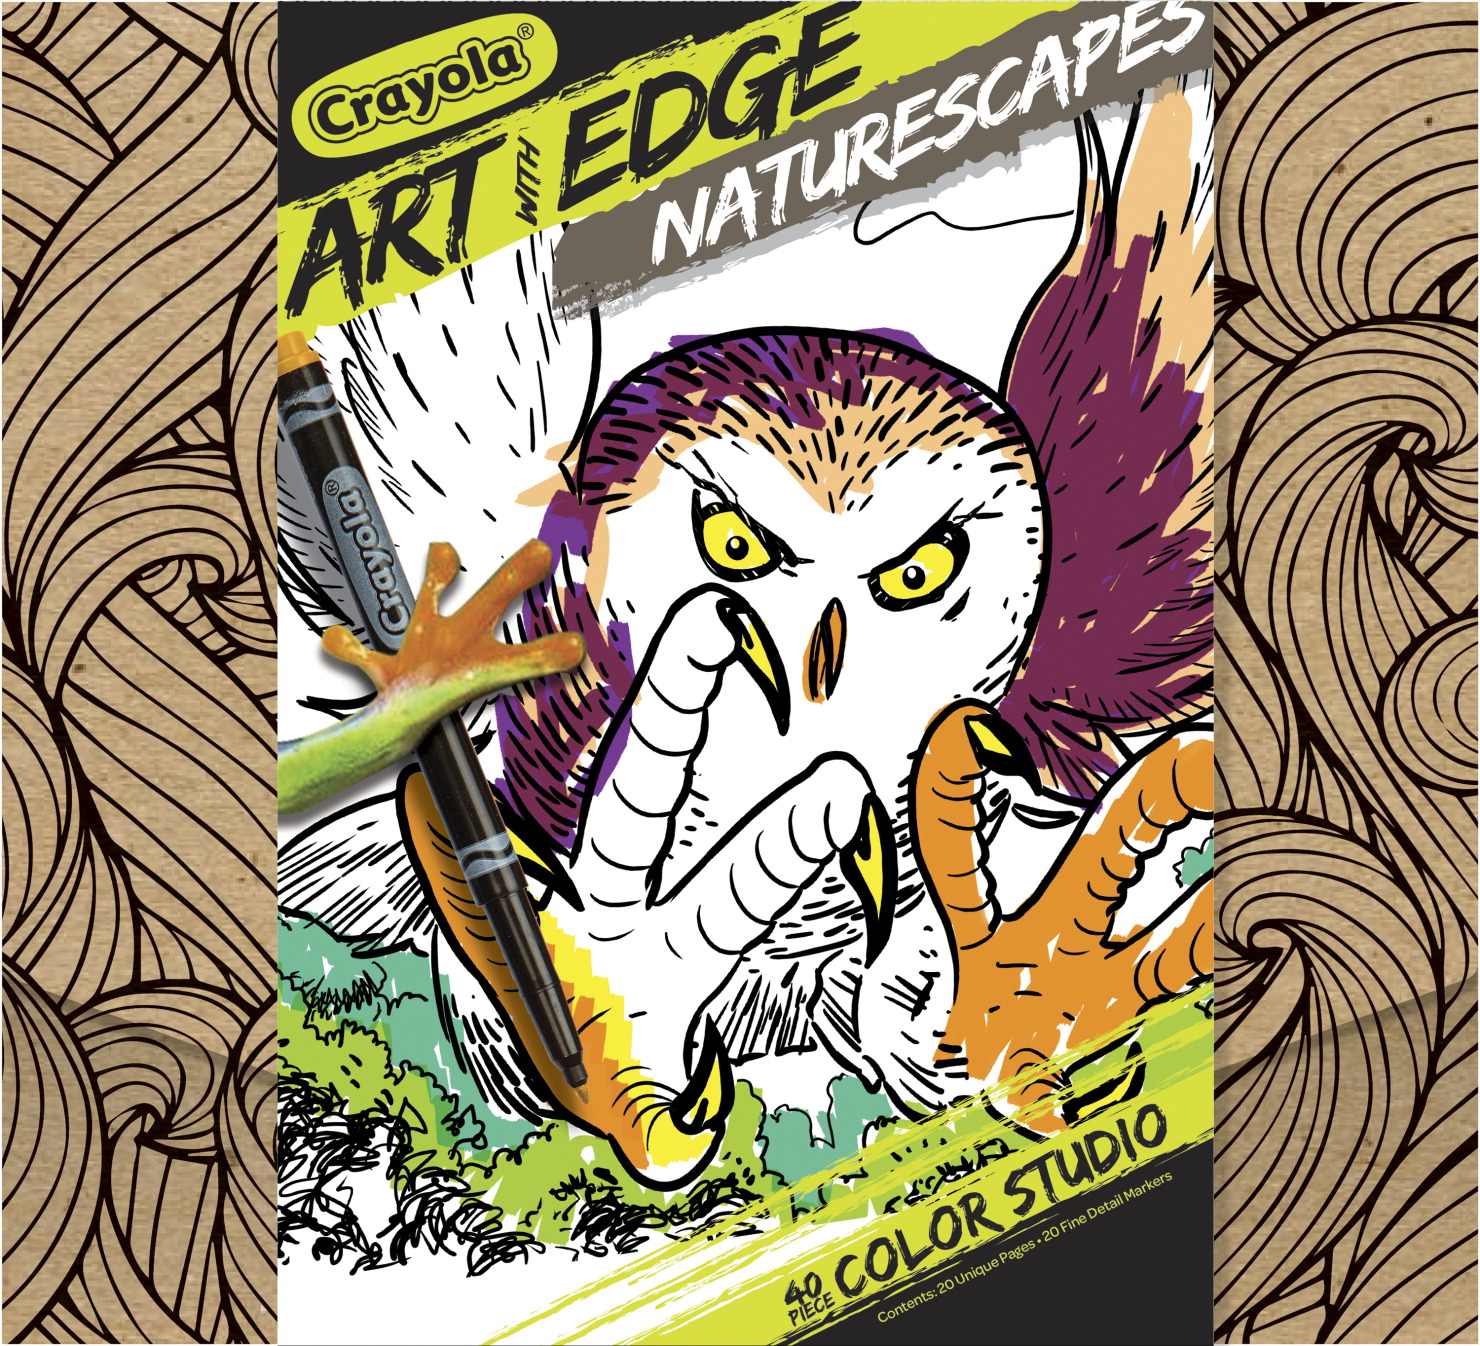 Crayola Art With Edge Naturescapes Coloring Set, 20 Sheets, 20 Fine Line Markers